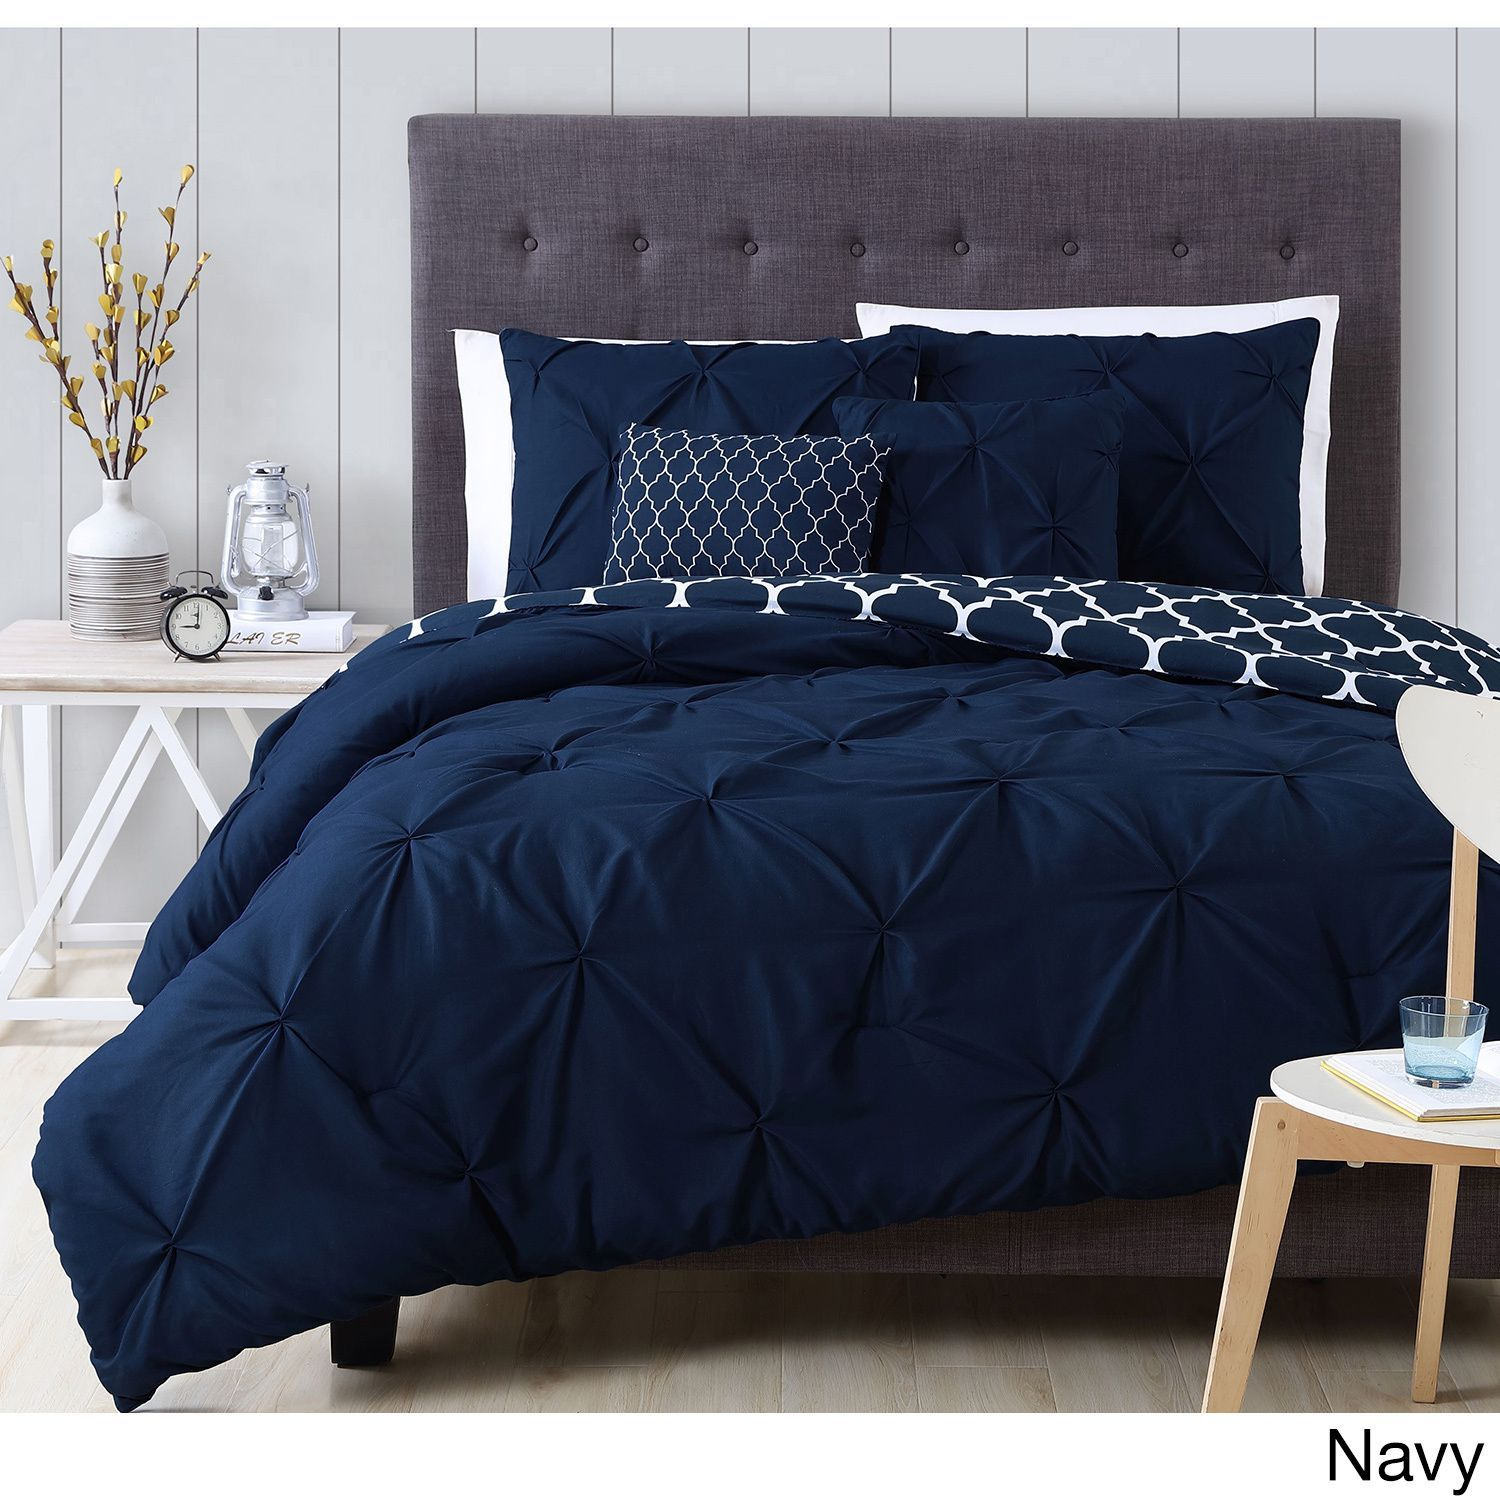 Avondale Manor Madrid 5 Piece Comforter Set King Navy Blue Microfiber Geometric